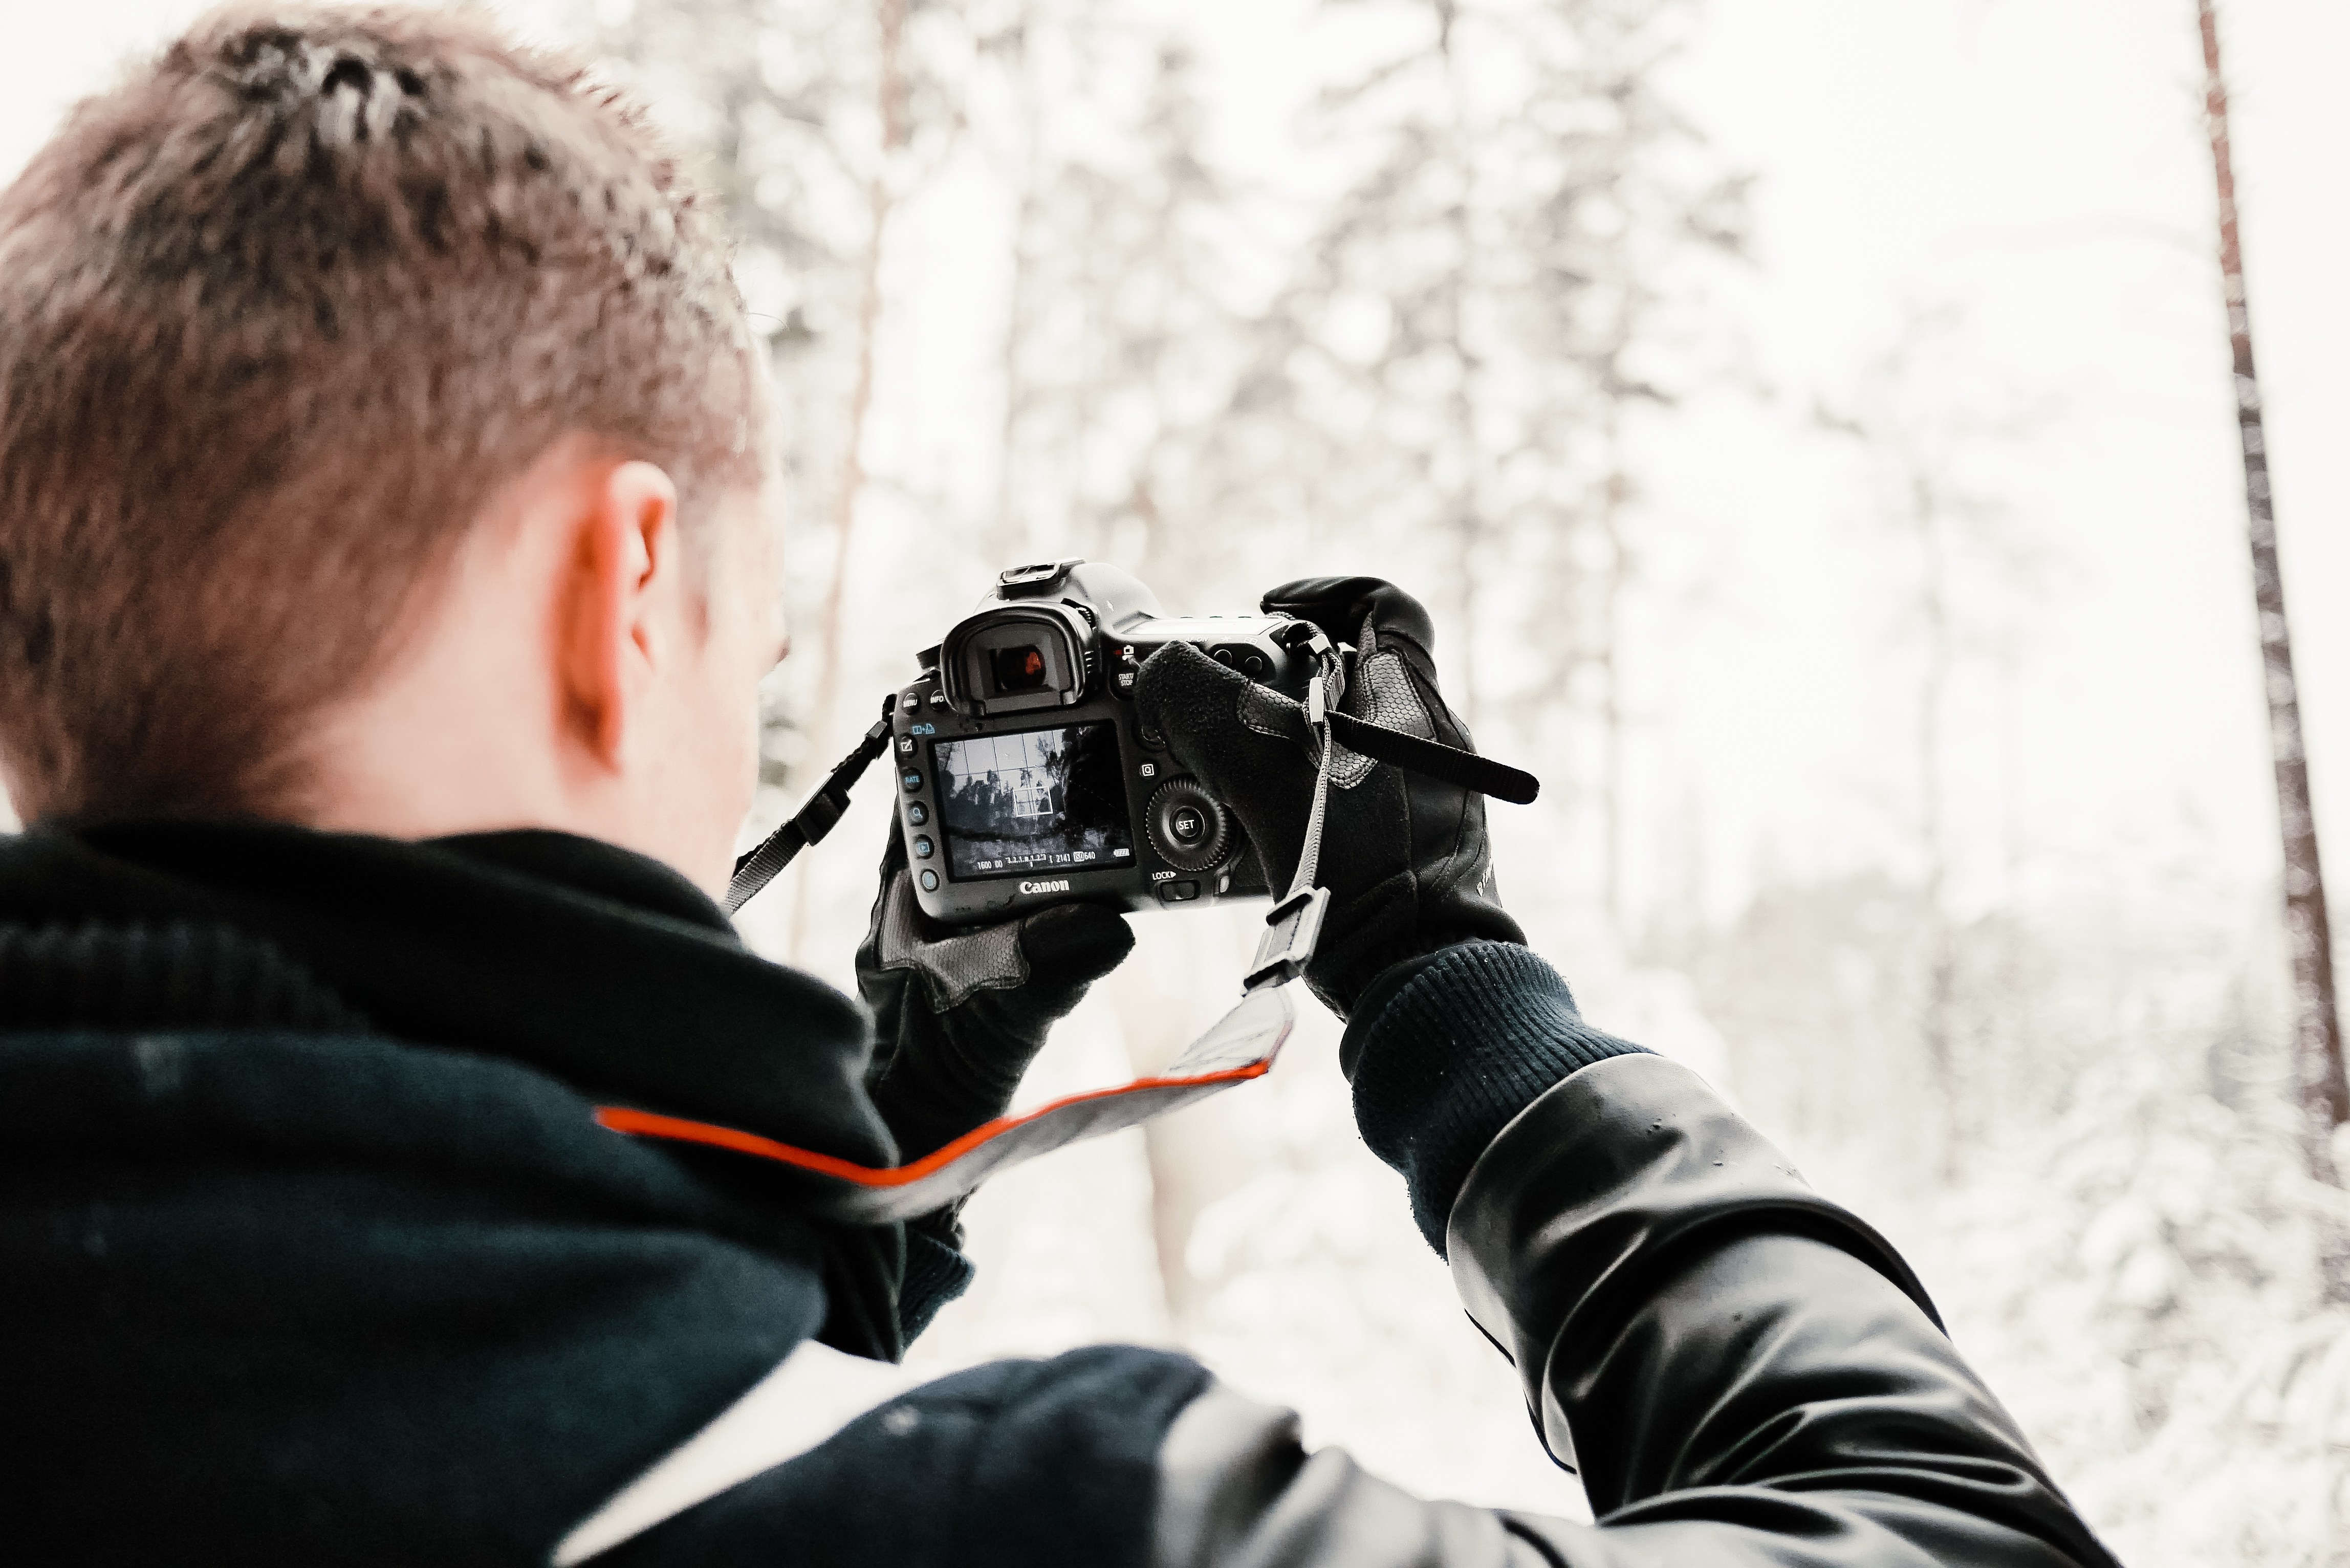 photographer-in-snowy-forest-taking-wint